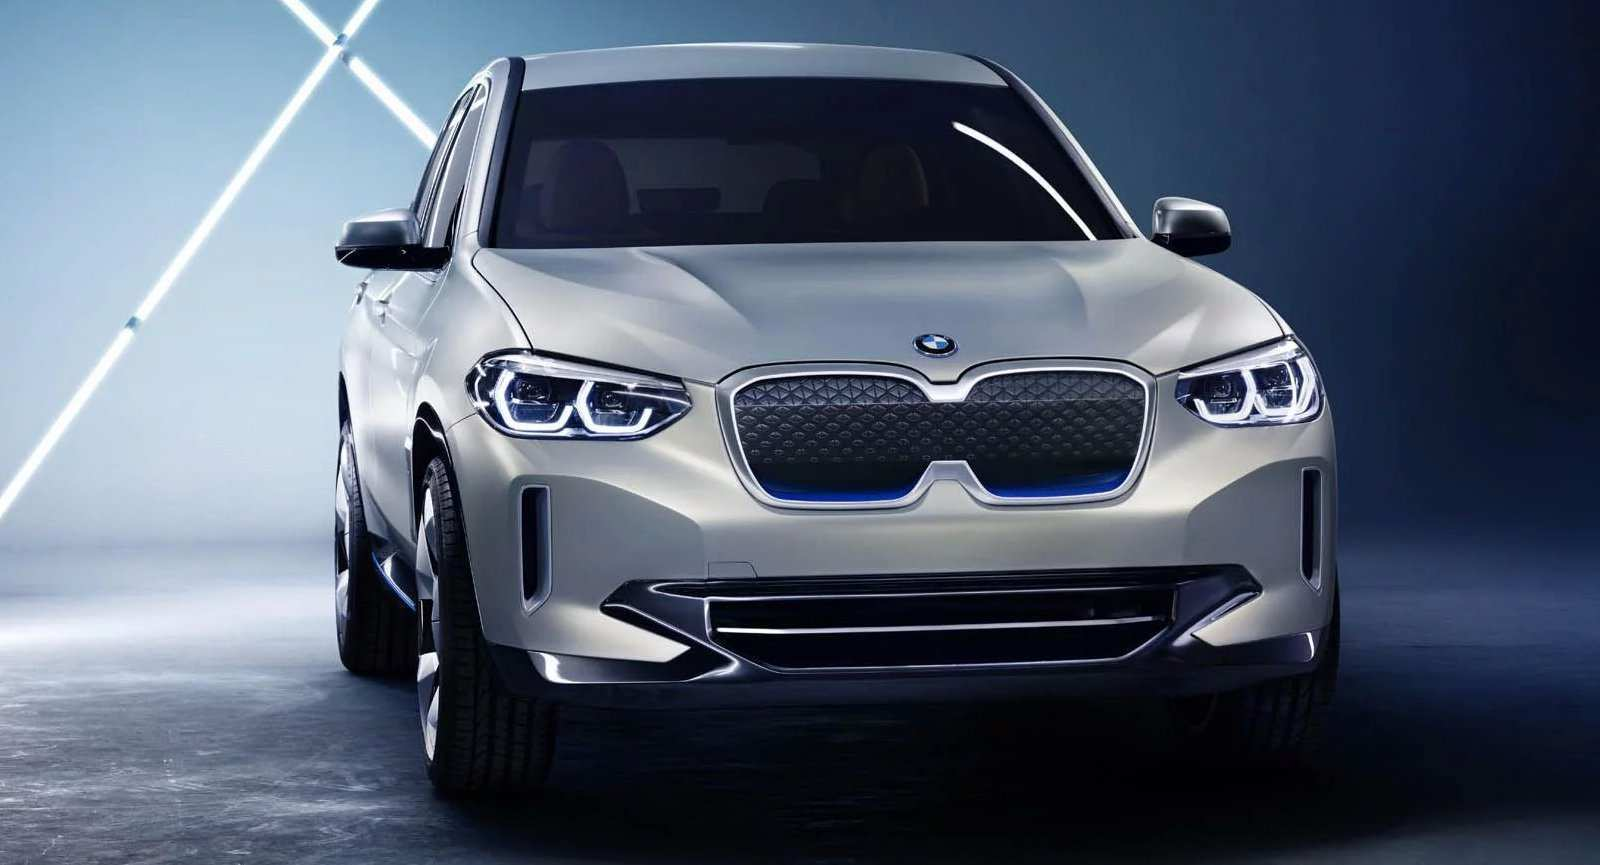 32 All New Bmw Of 2020 Exterior with Bmw Of 2020